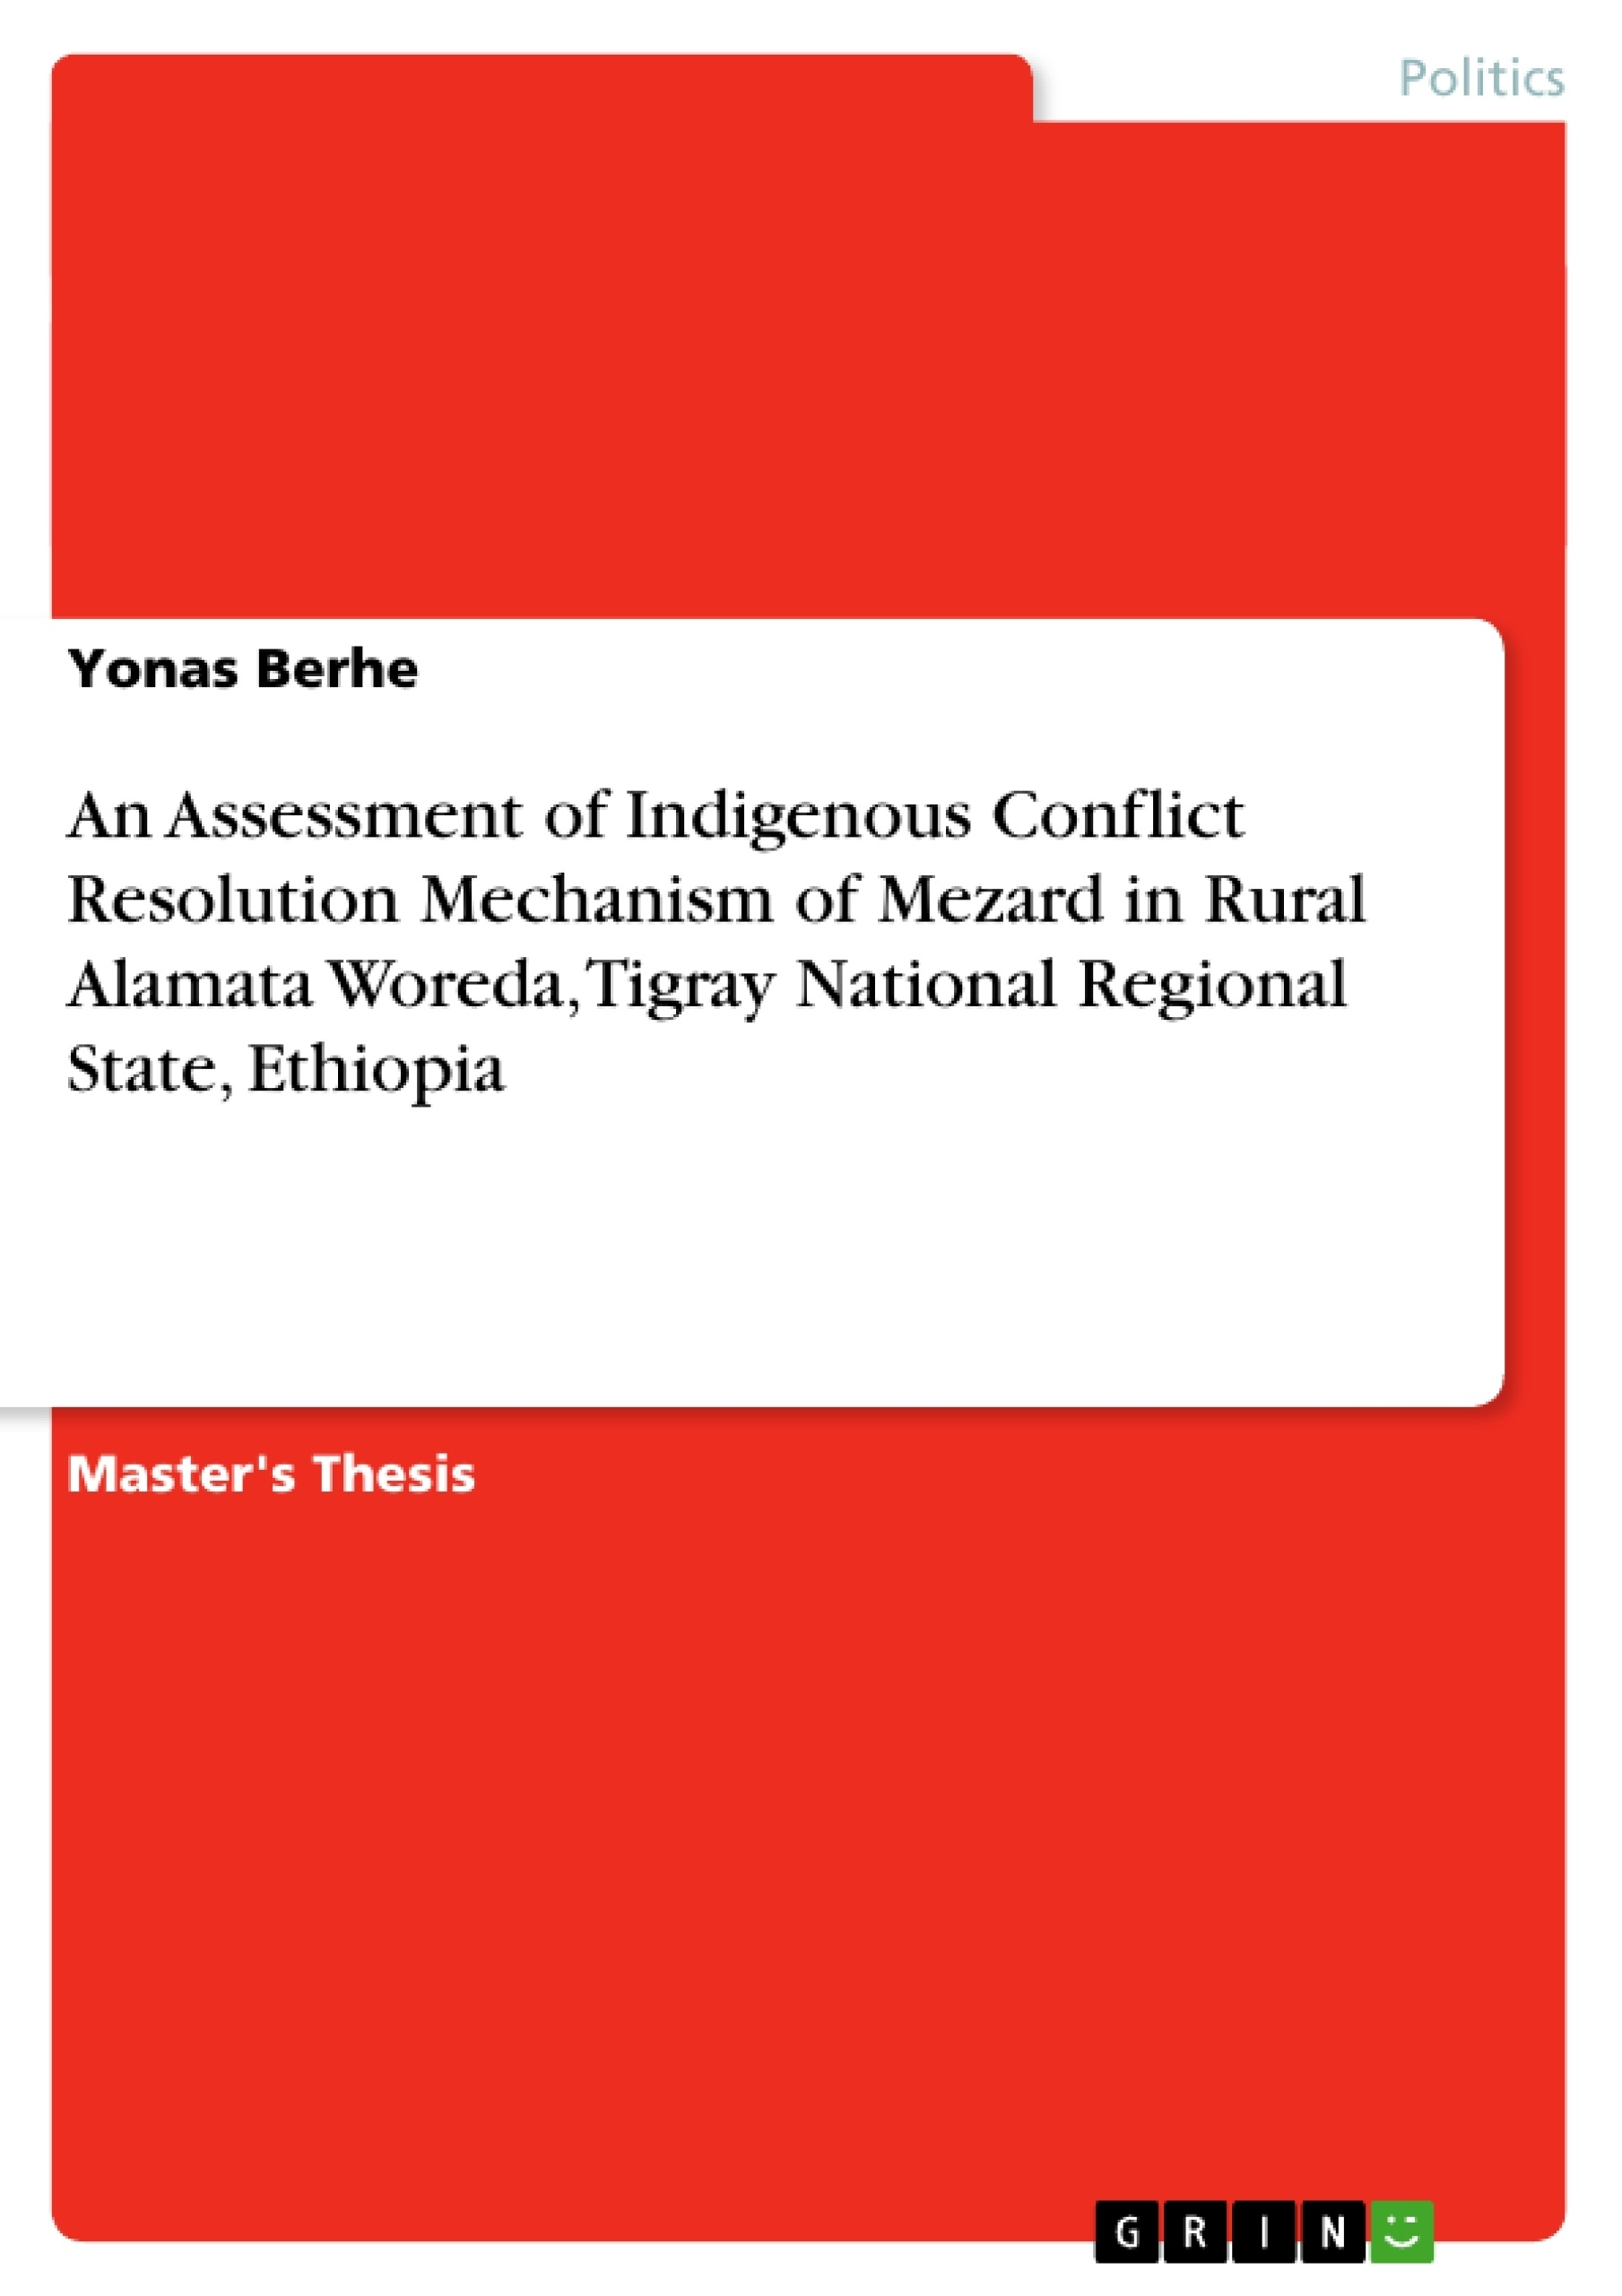 rural urban migration in ghana cultural studies essay Despite the acknowledged importance and large scale of rural-urban migration in  many developing countries, few studies have compared education outcomes.